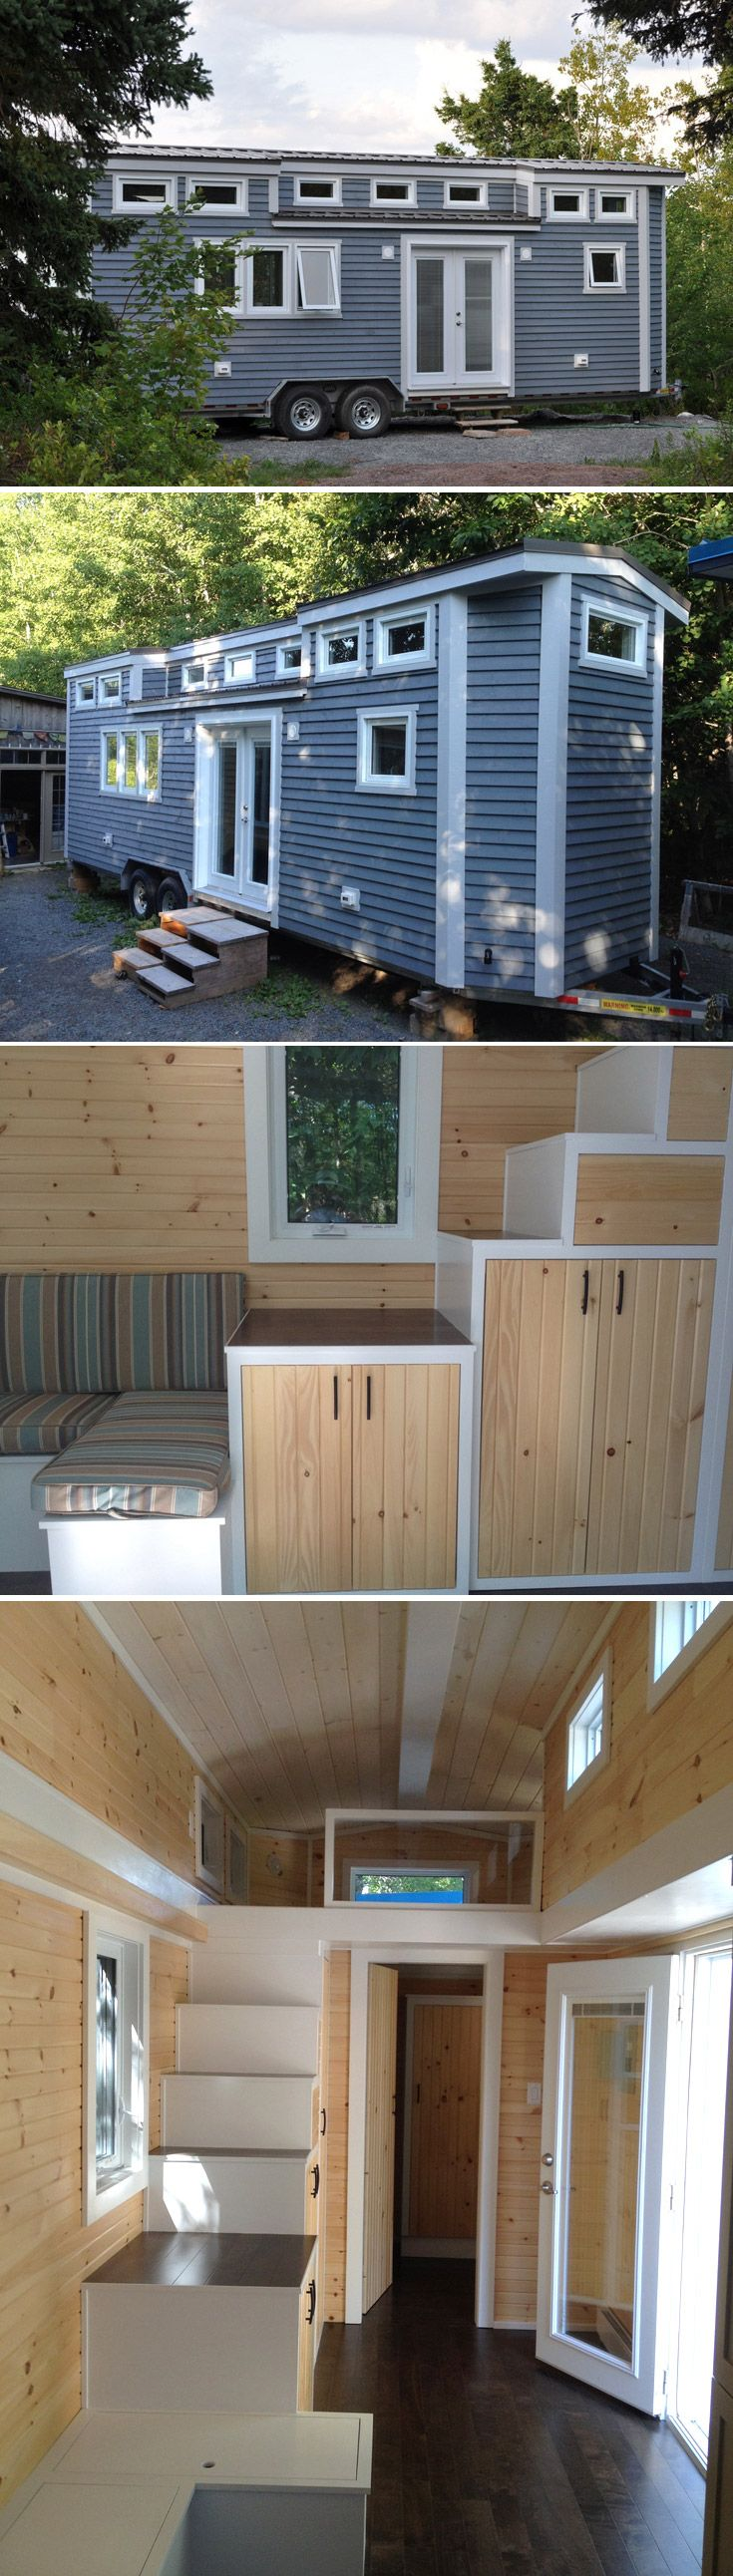 25 best ideas about tiny house on wheels on pinterest house on wheels mini homes and tiny homes on wheels - Tiny House On Wheels Plans